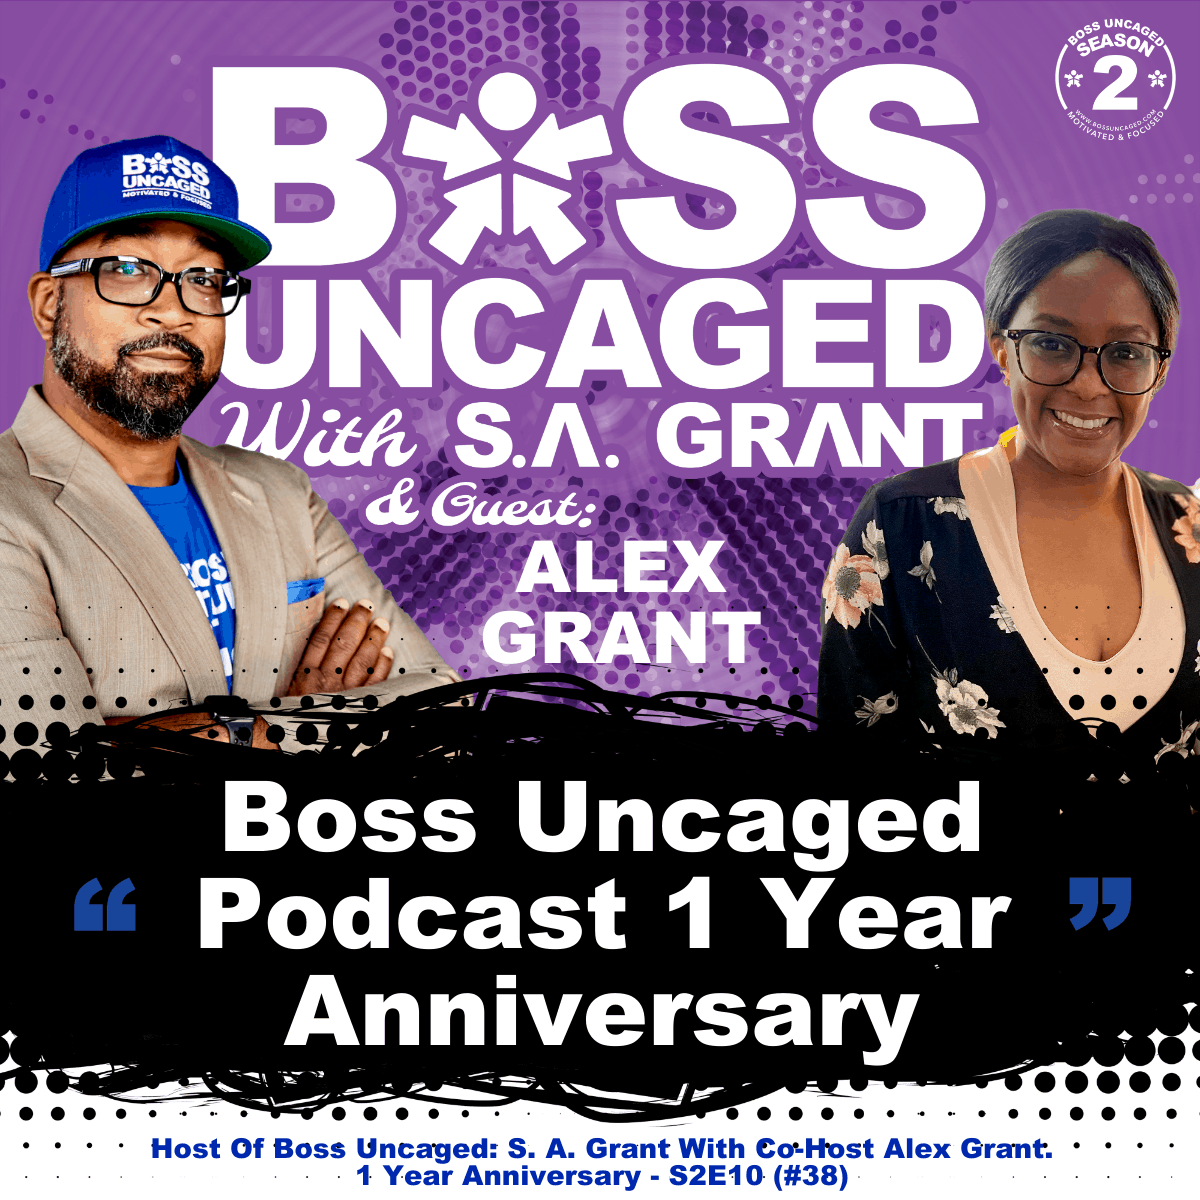 Host Of Boss Uncaged: S. A. Grant With Co-Host Alex Grant. 1 Year Anniversary - S2E10 (#38)